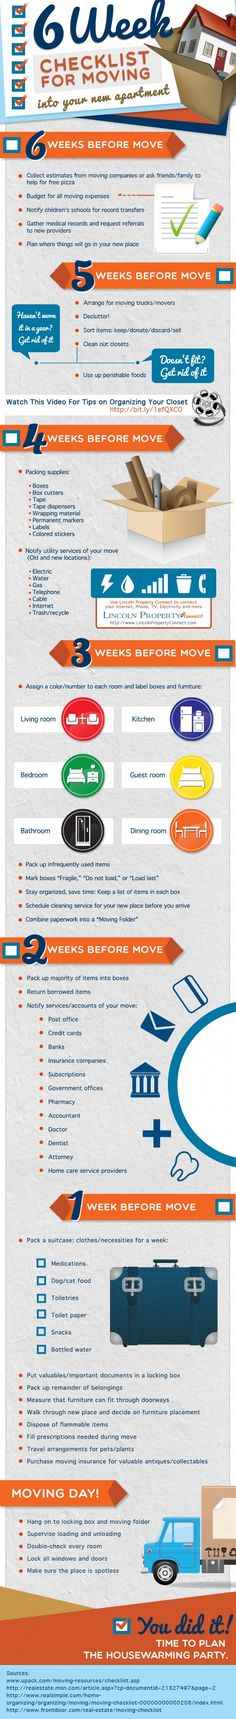 6 Week Checklist For Moving